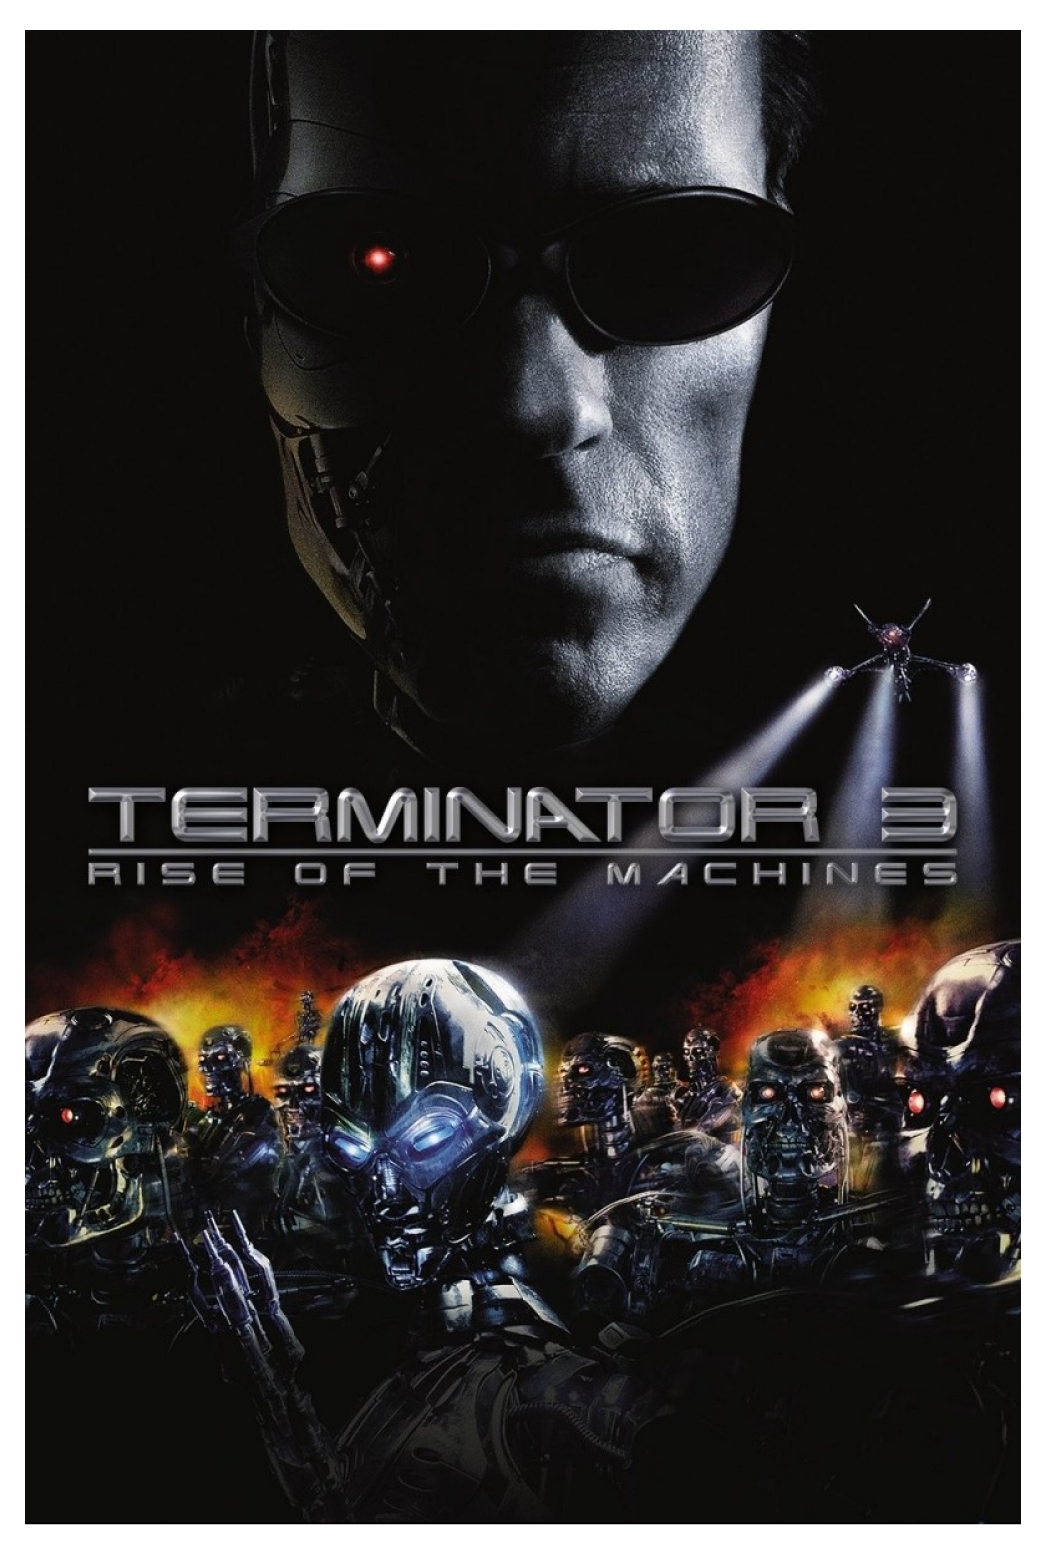 poster-terminator-3-rise-of-the-machines-schwarzenegger.